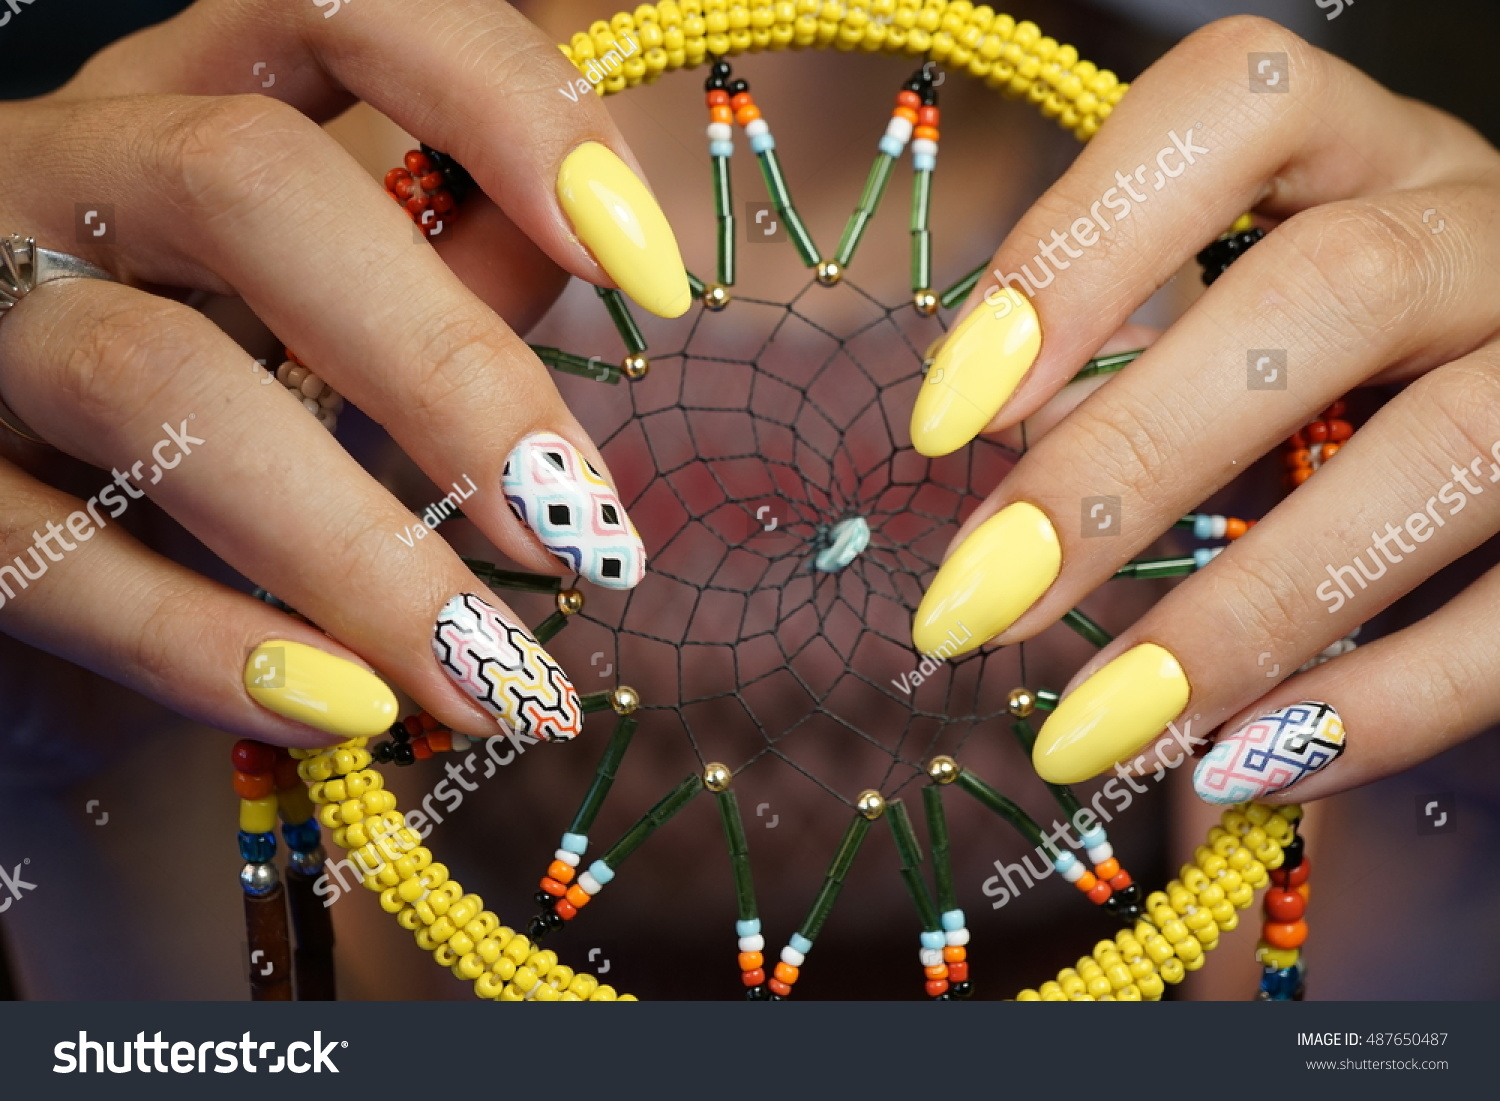 Natural Nails Beautiful Nail Art You Stock Photo (Edit Now ...